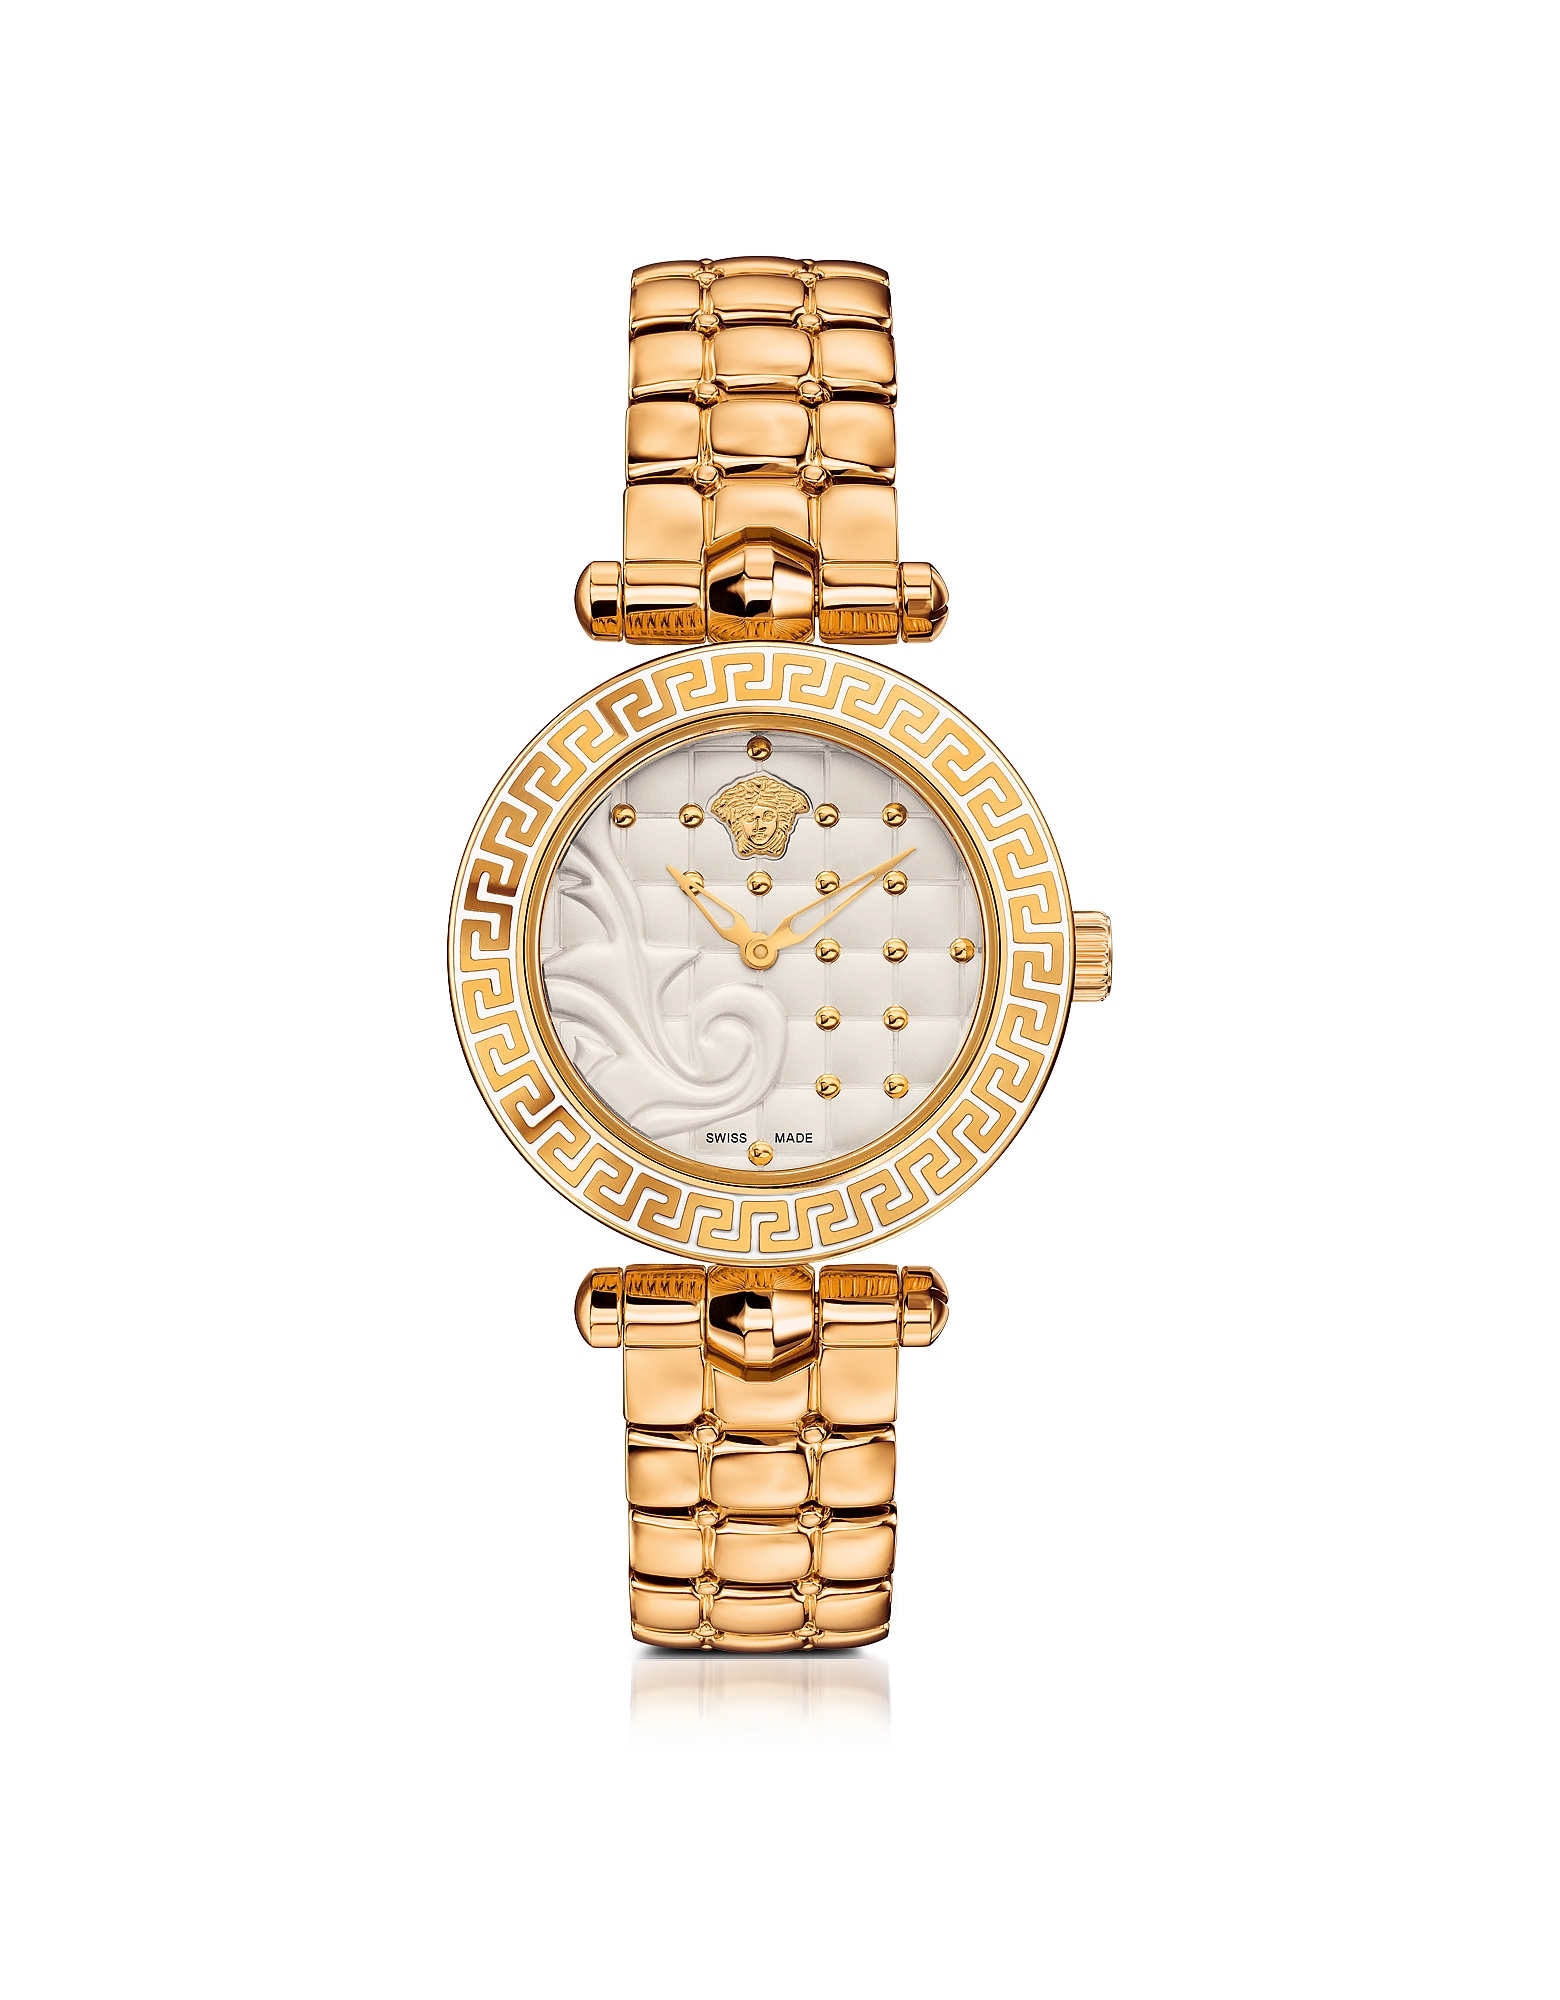 Versace Women's Watches, Micro Vanitas PVD Gold Plated Women's Watch w/Baroque White Dial